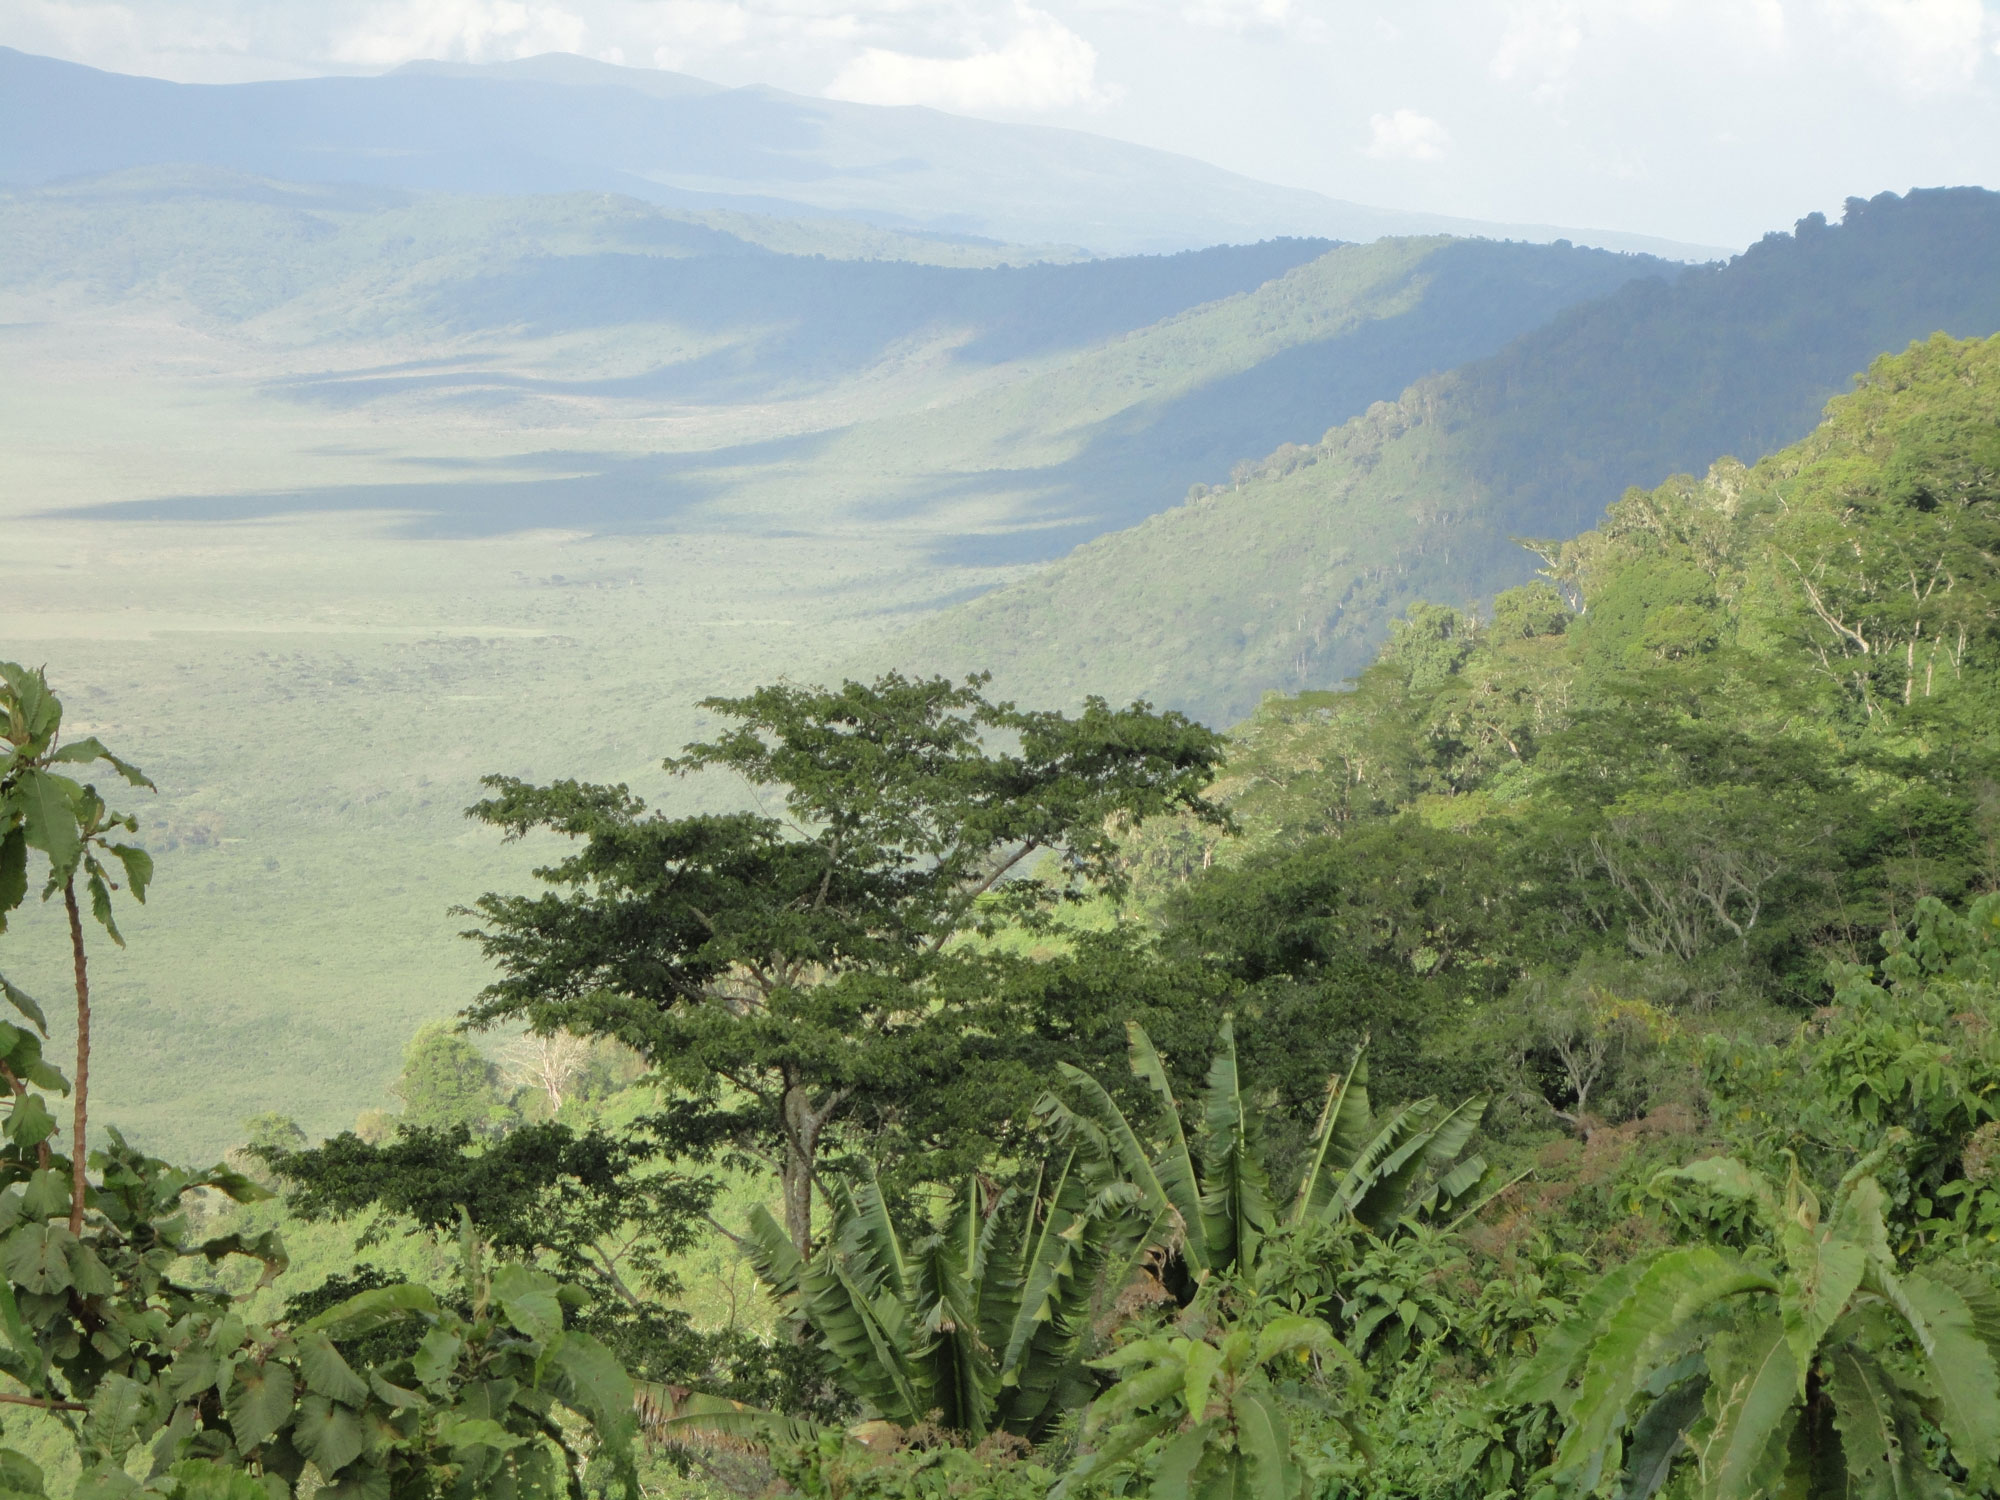 Travel Medicine - The Ngorongoro Crater